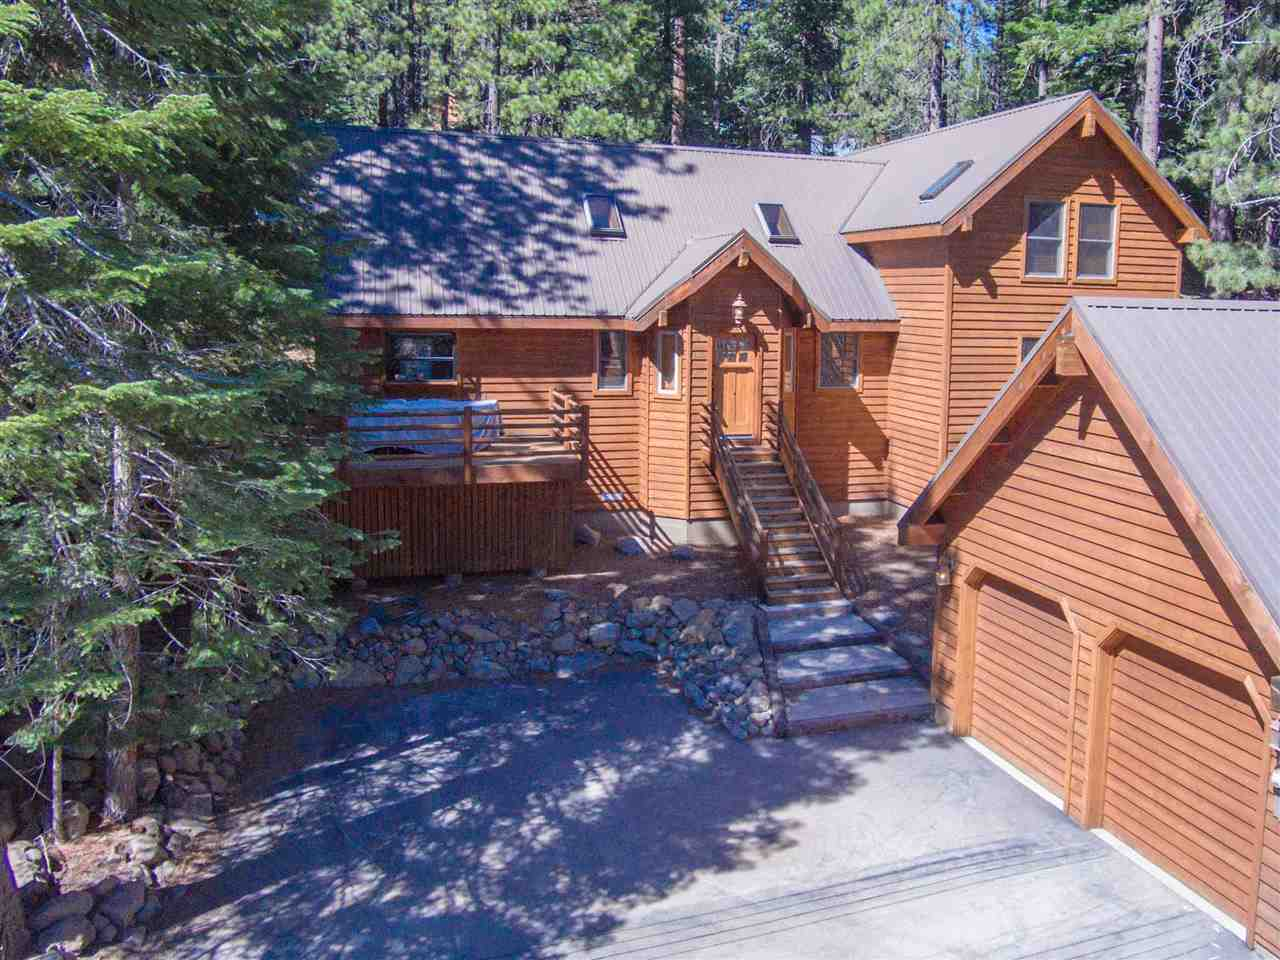 Single Family Home for Active at 13090 Falcon Point Place Truckee, California 96161 United States